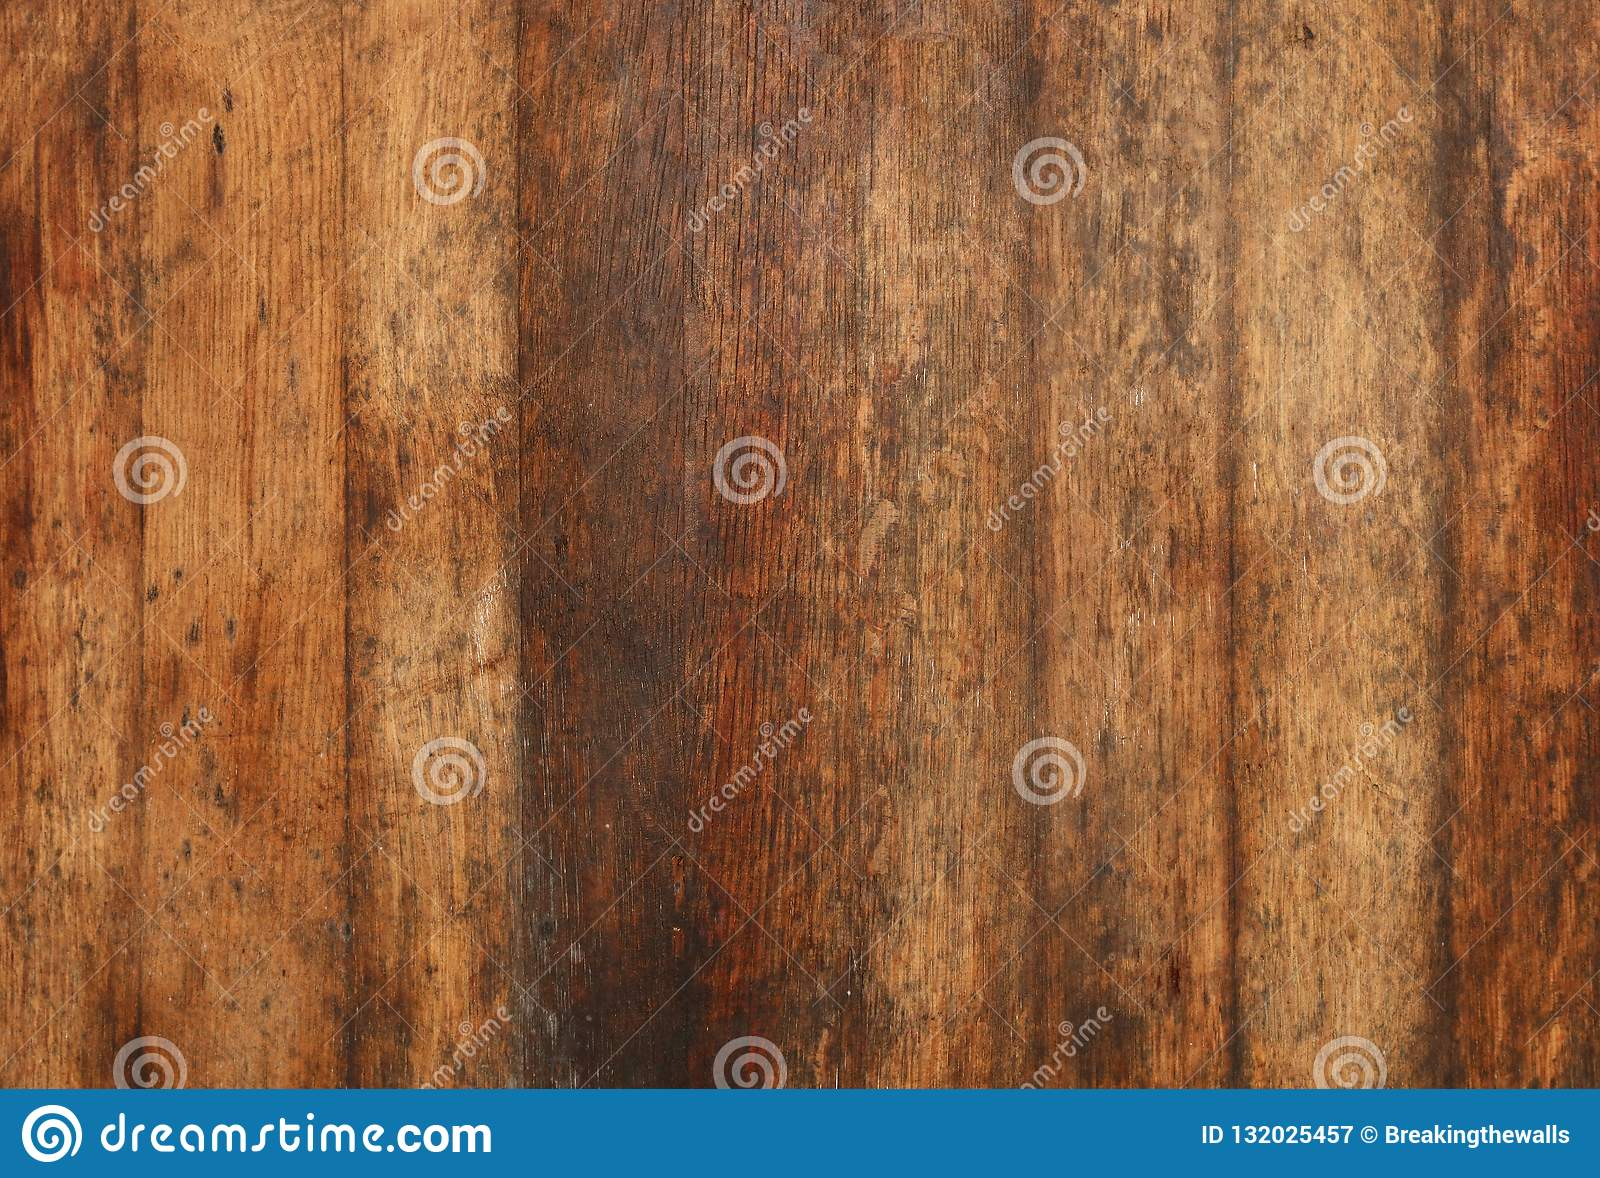 Old Aged Brown Wooden Planks Background Texture Stock Image - Image